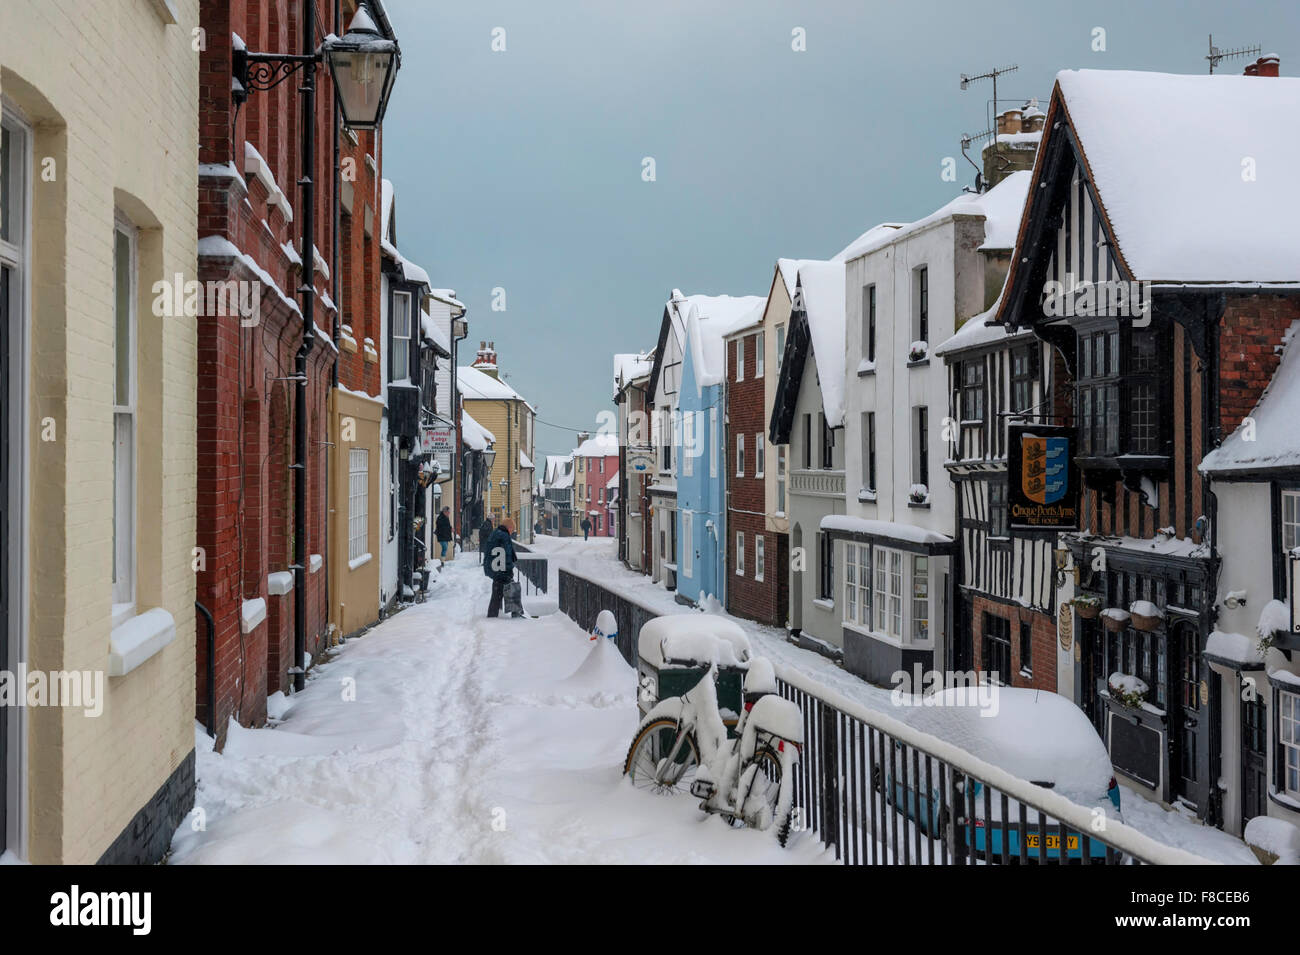 Snow covered All Saints Street, Hastings old town, East Sussex, England, UK - Stock Image